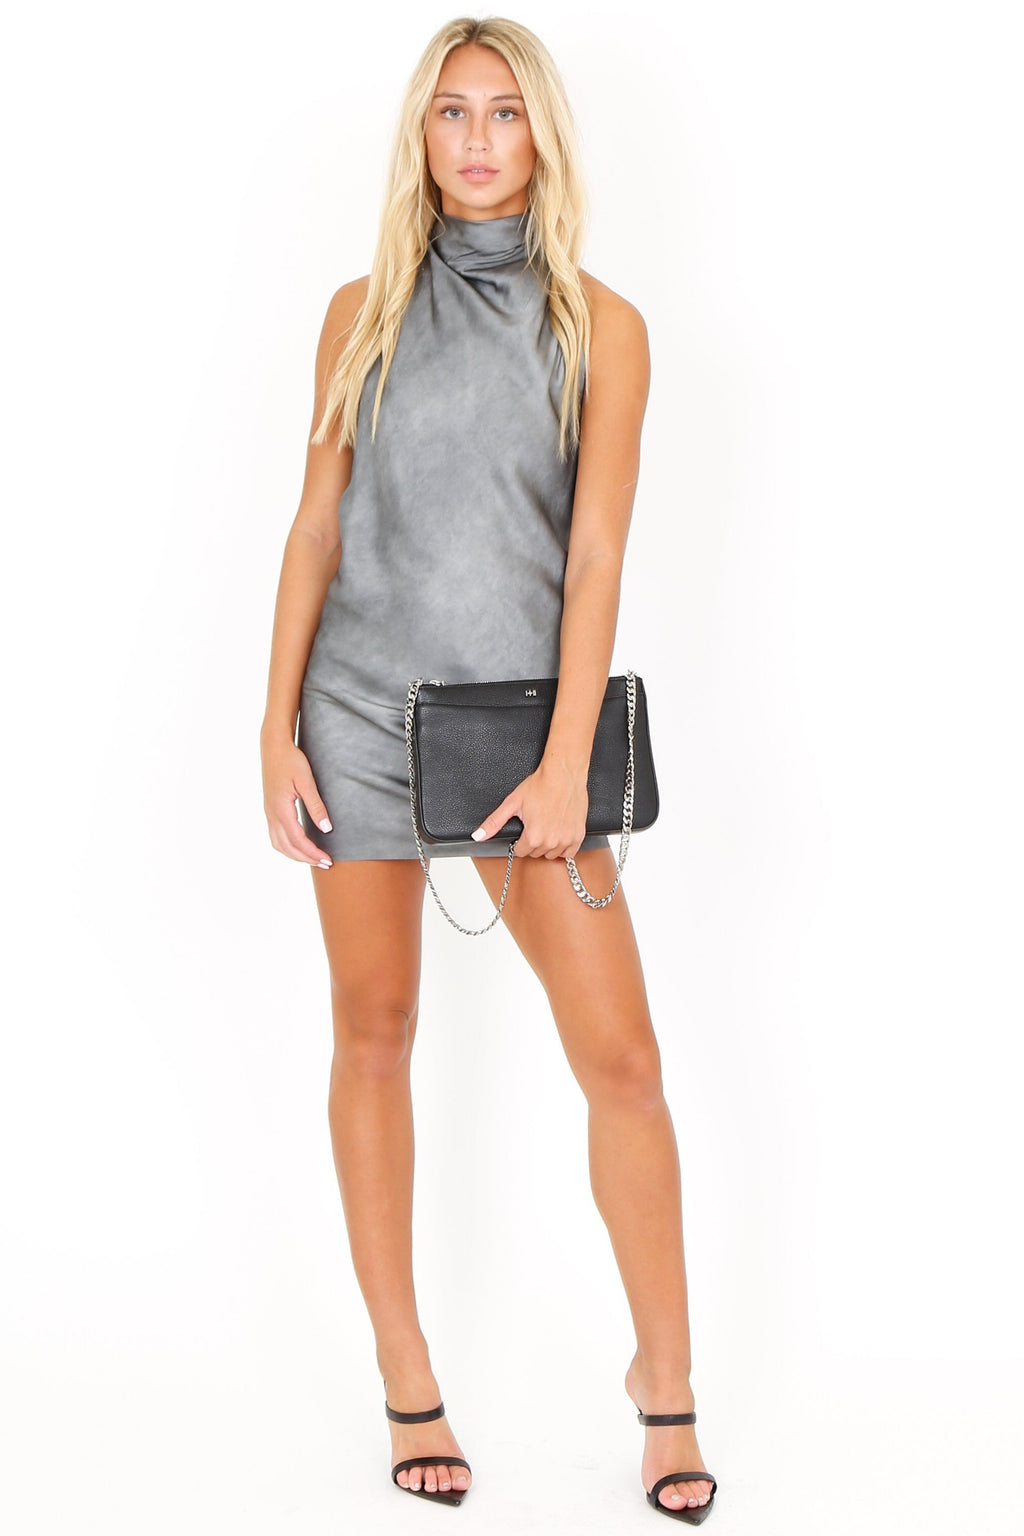 RTA | Abella Midi Corset Dress - Cement